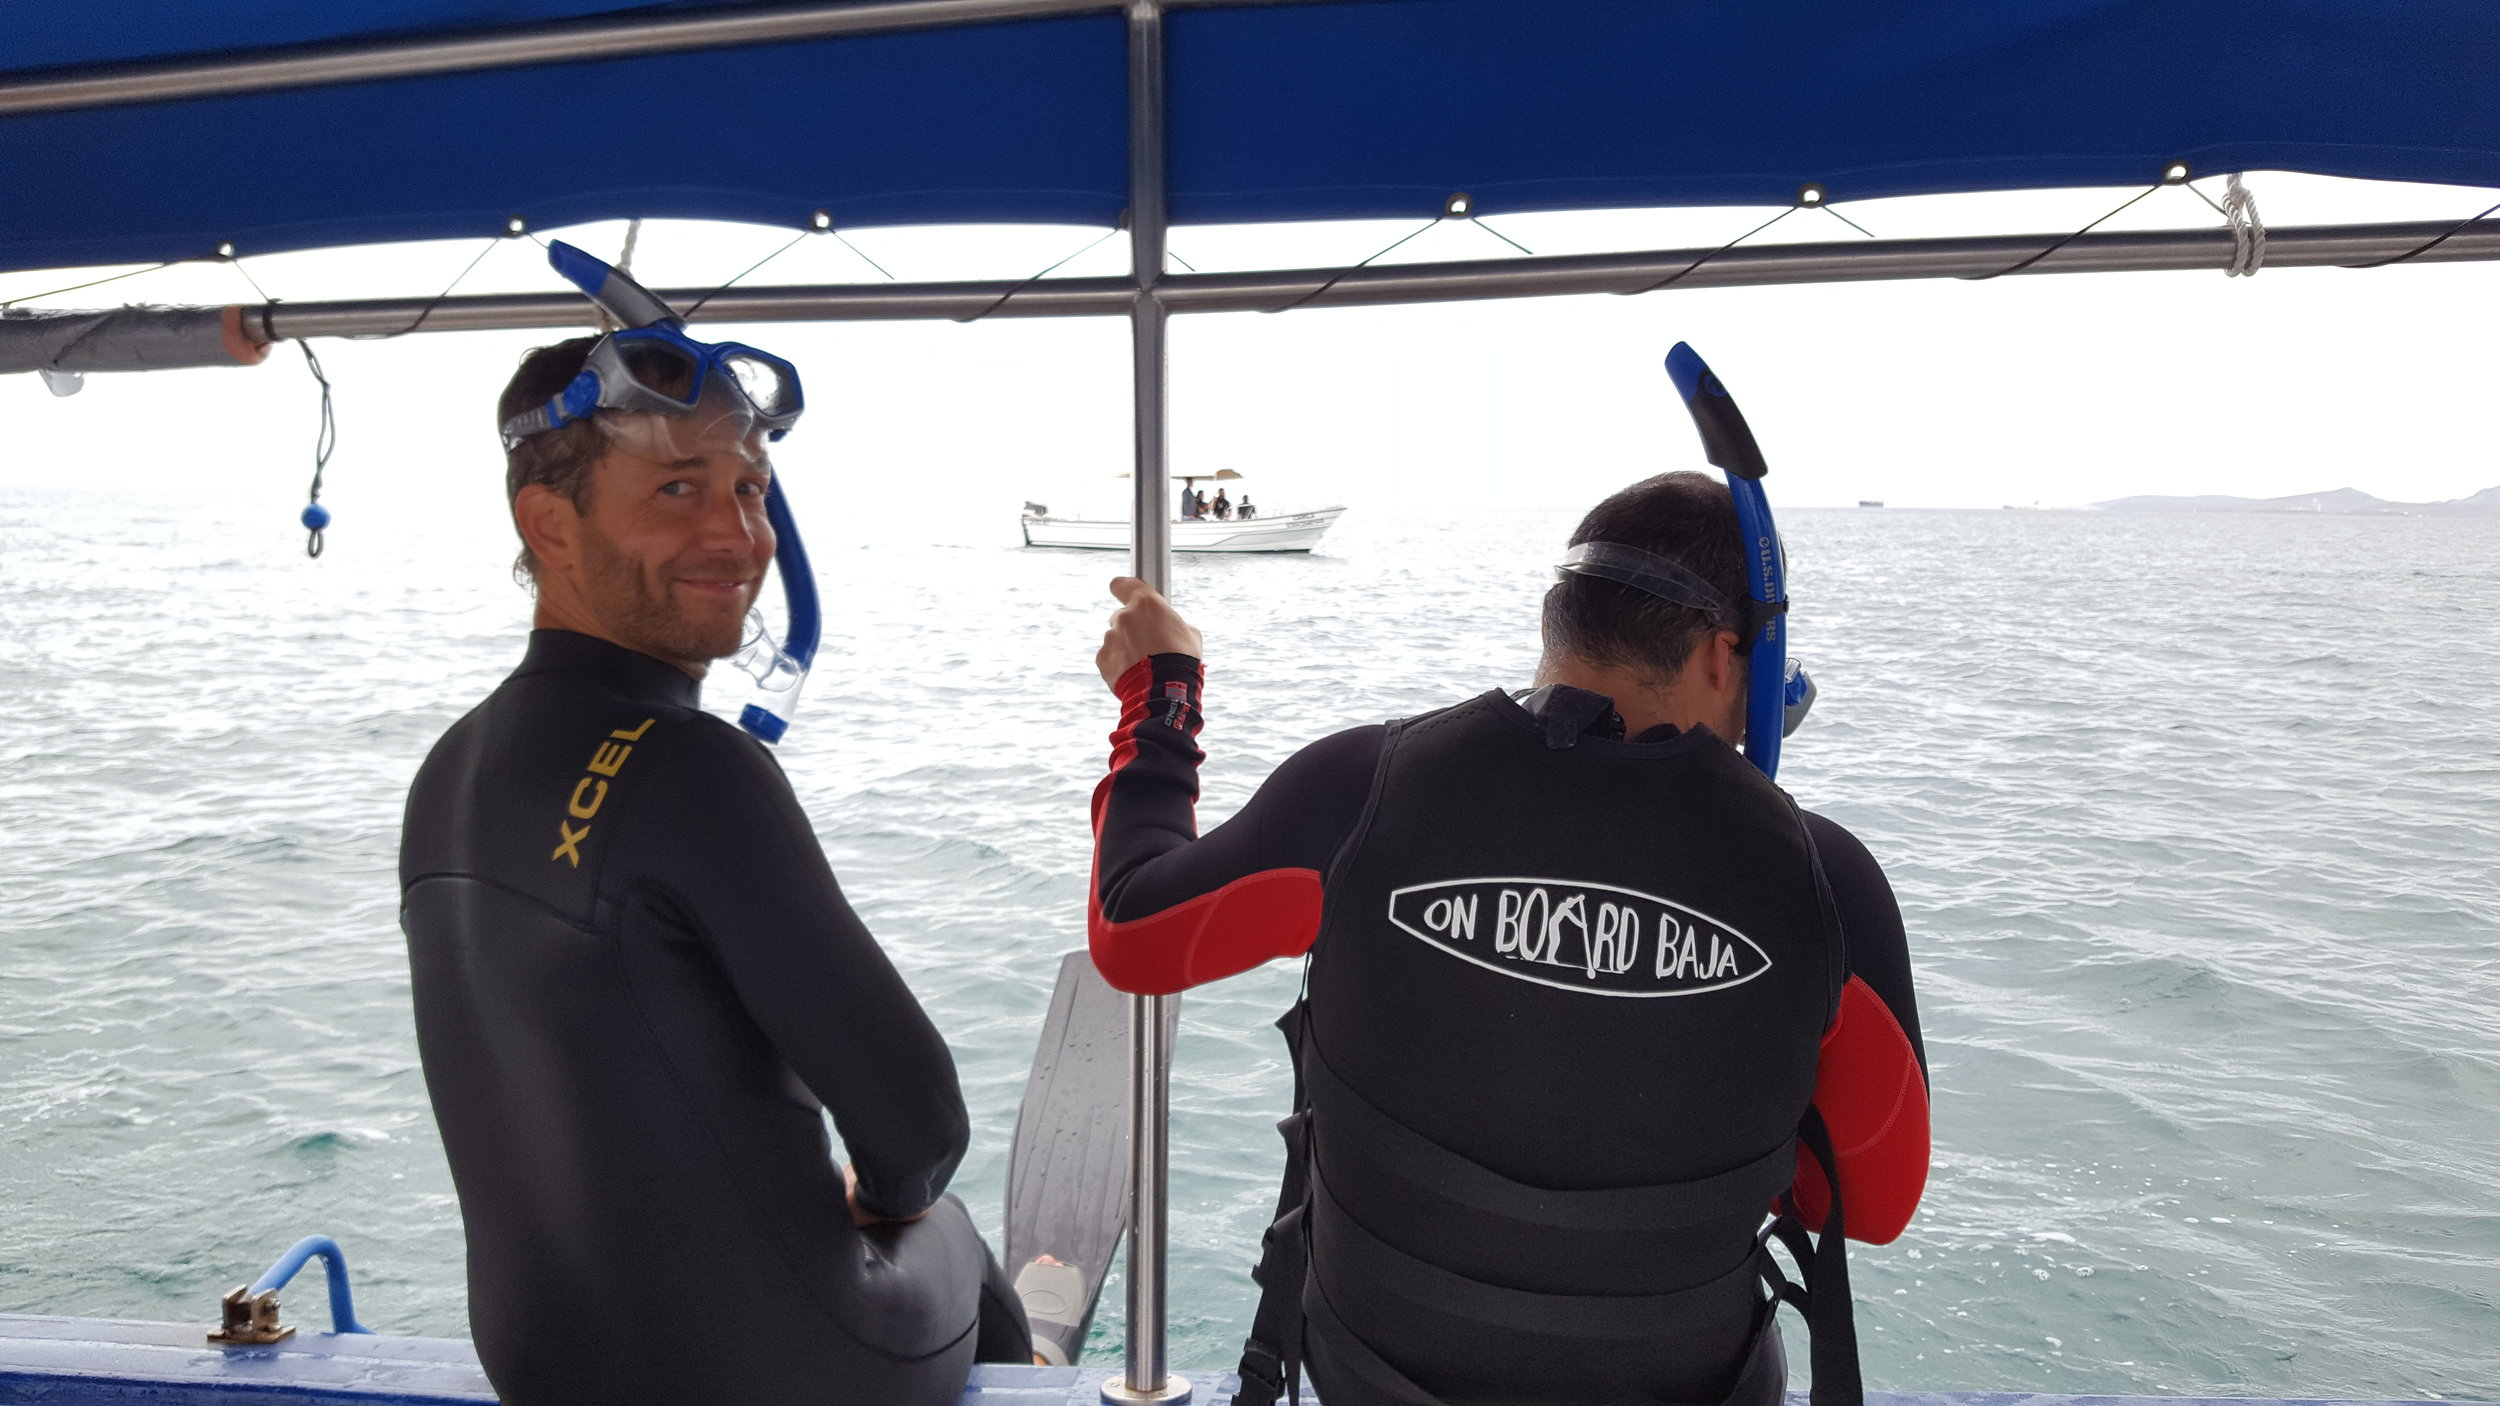 Chip and Matt ready to meet the biggest fish in the sea!